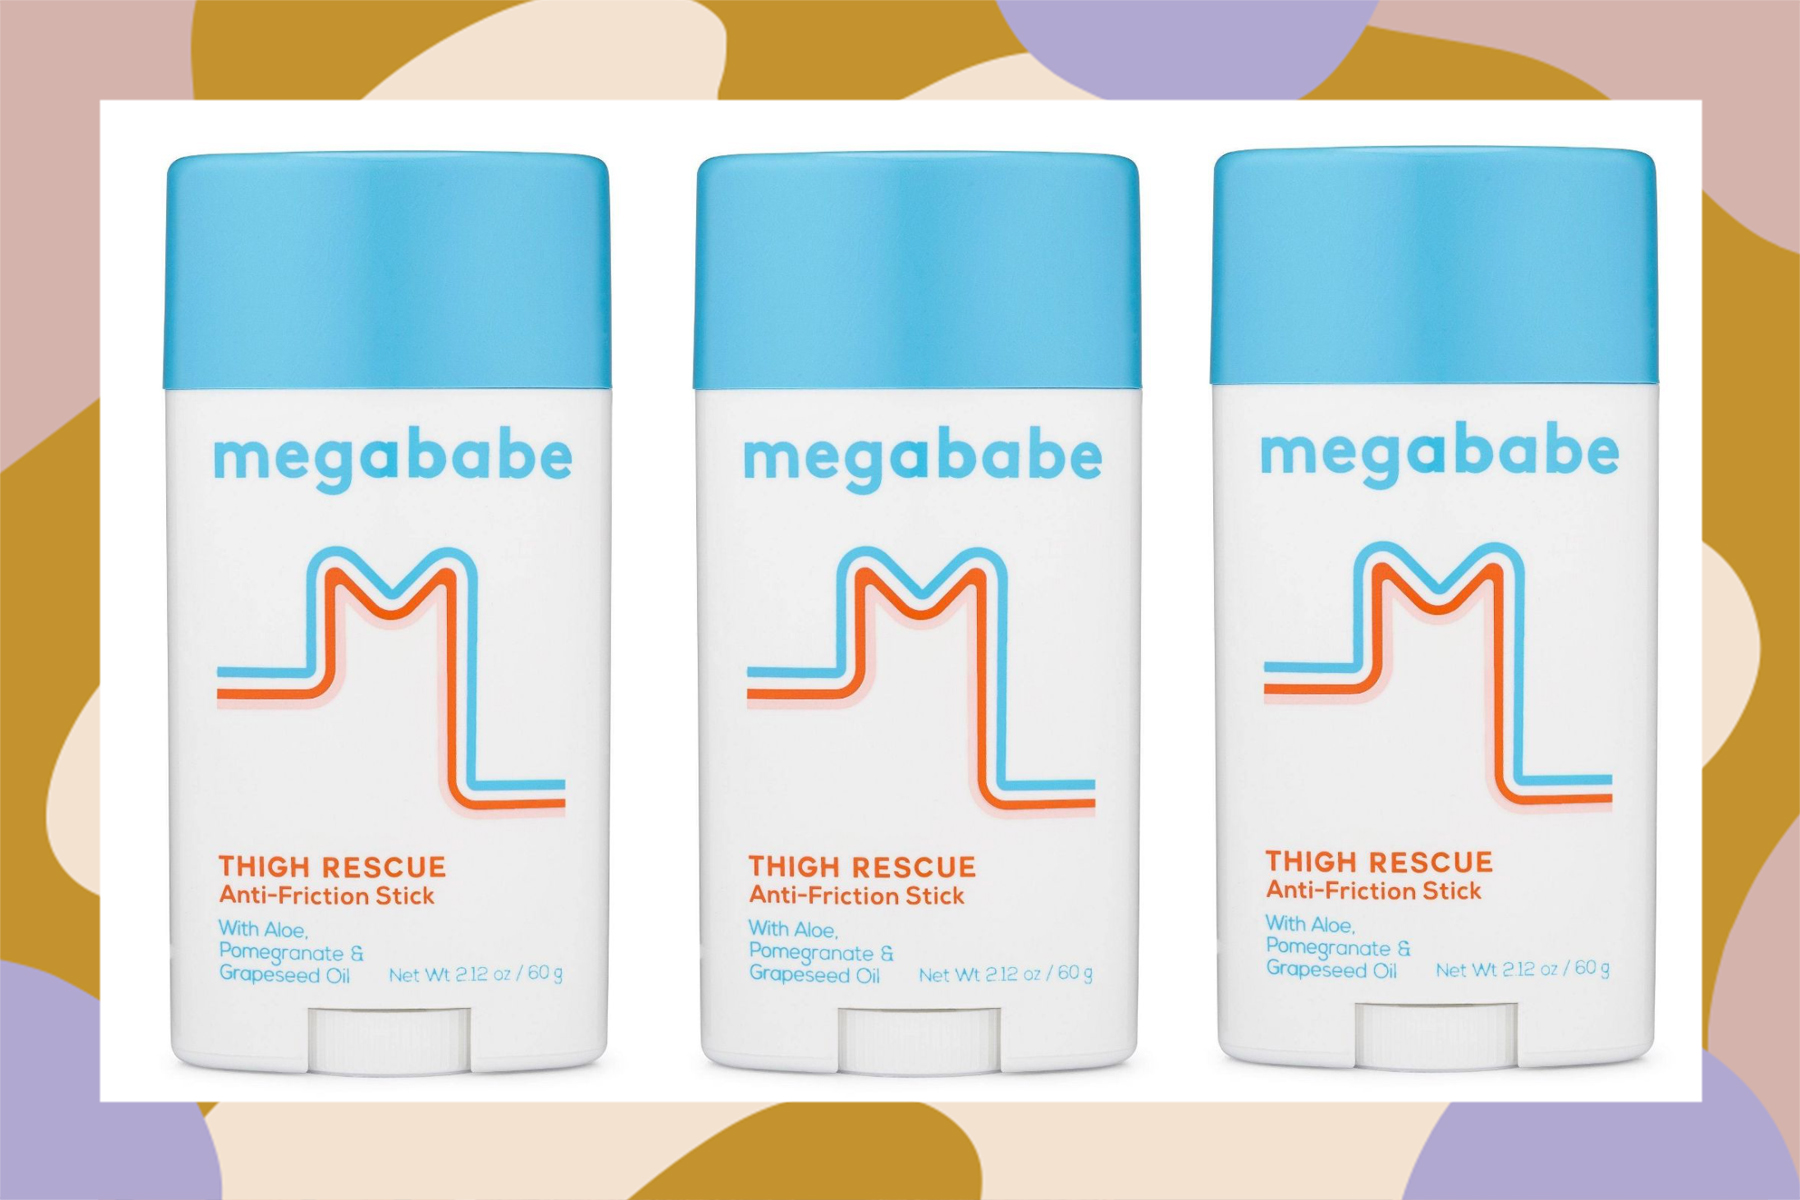 megababe thigh rescue review hellogiggles olivia muenter